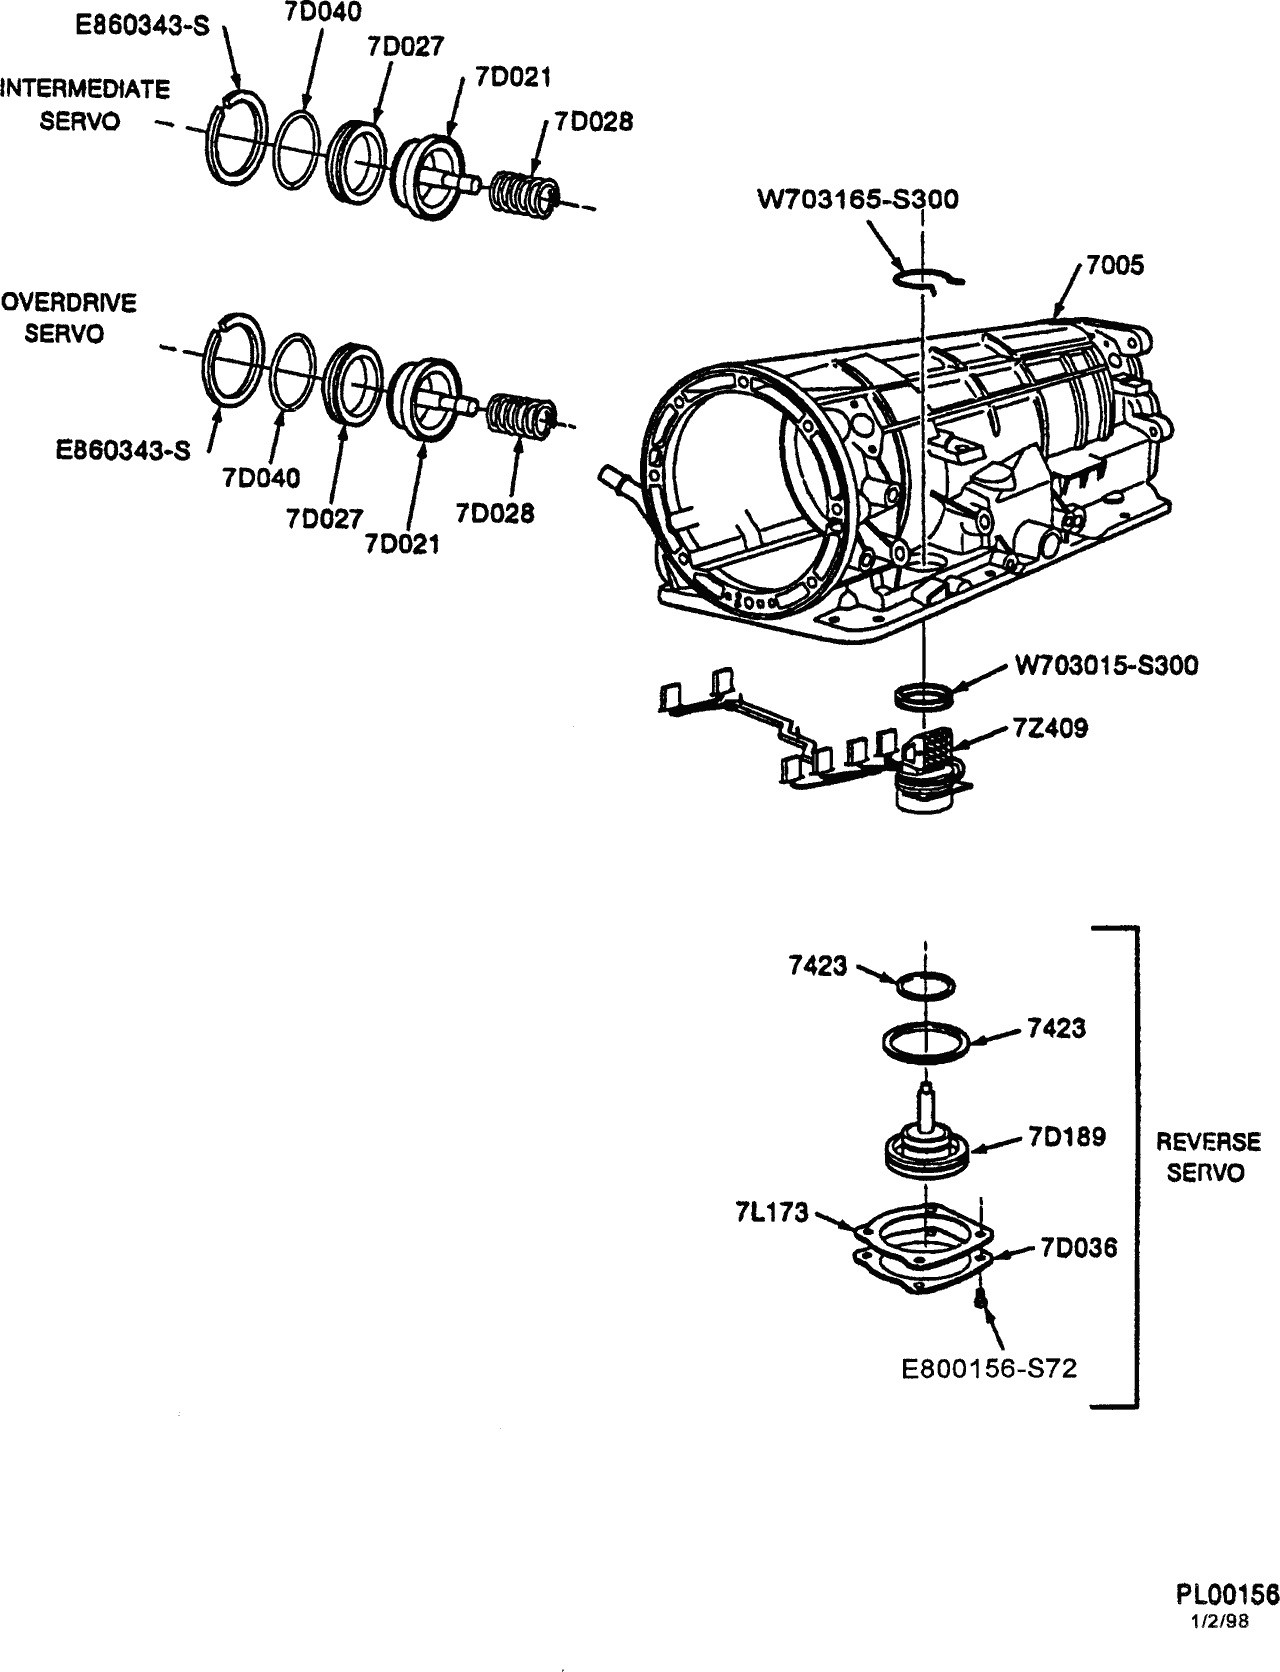 Ford Ranger Parts Diagram Trans Leak Exploded View Of 4r44e Automatic Trans Ranger forums Of Ford Ranger Parts Diagram